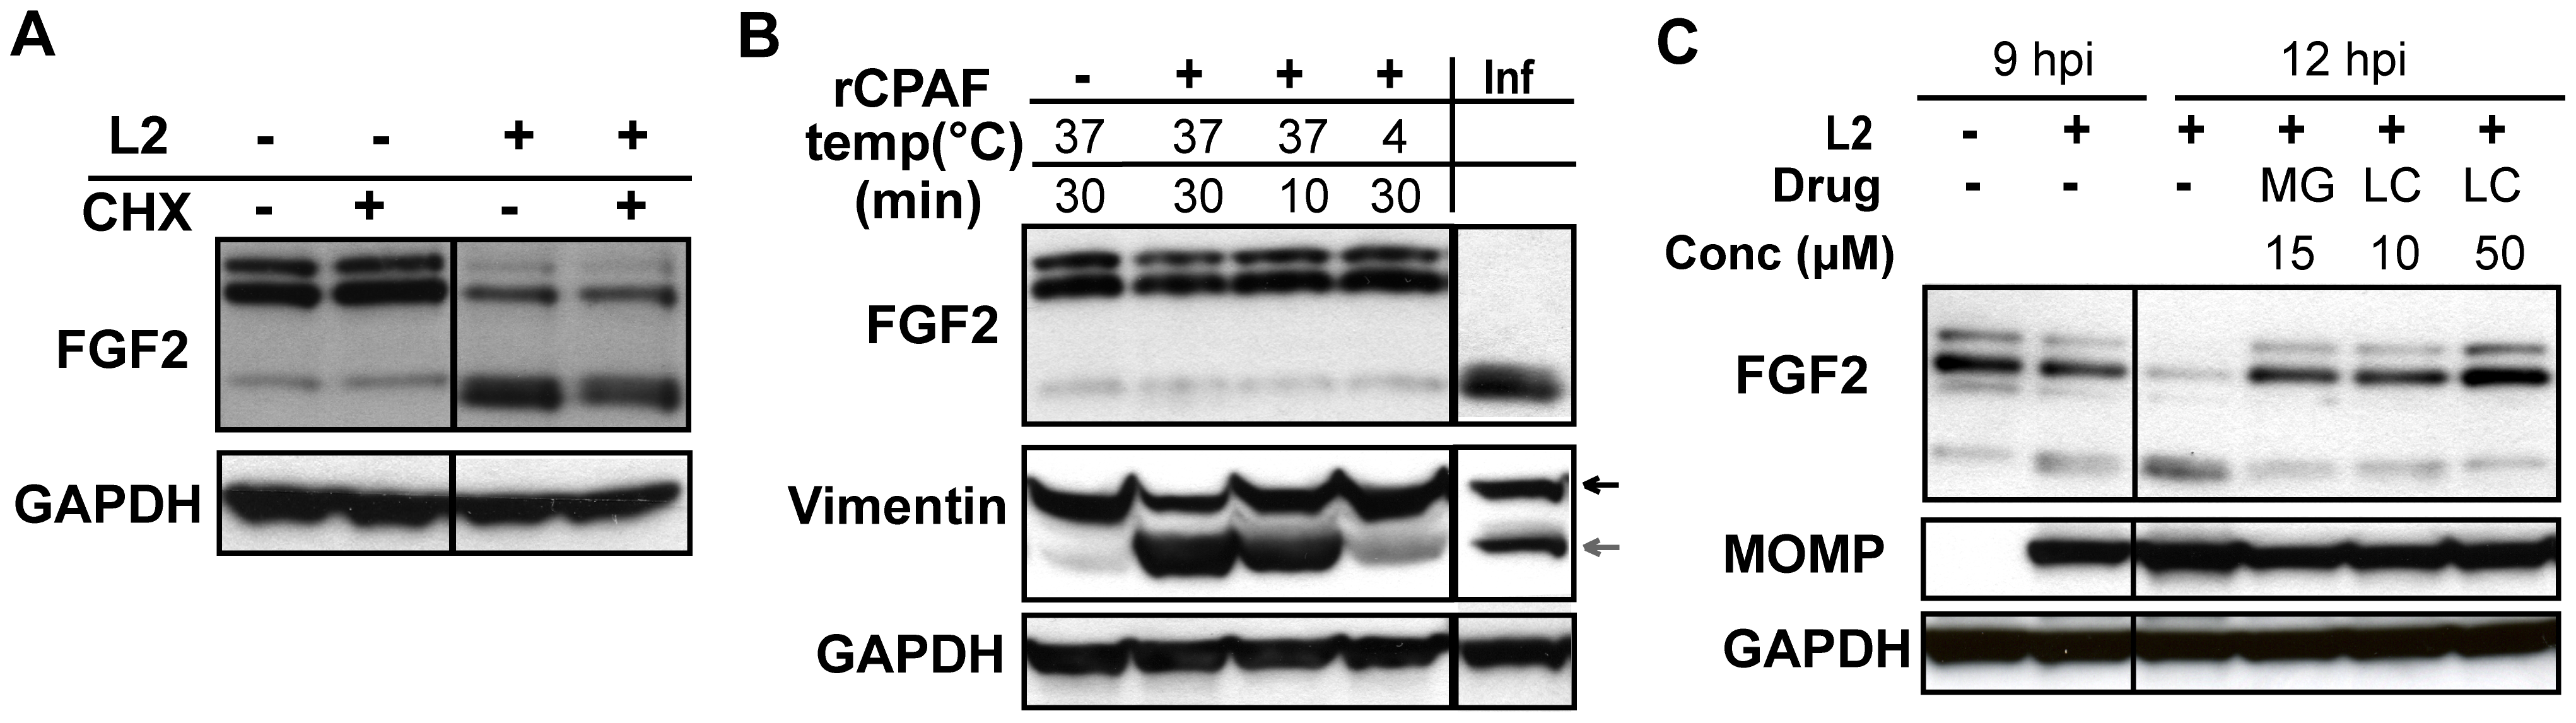 HMW FGF2 isoforms are degraded by <i>C. trachomatis</i> L2-induced host proteases.